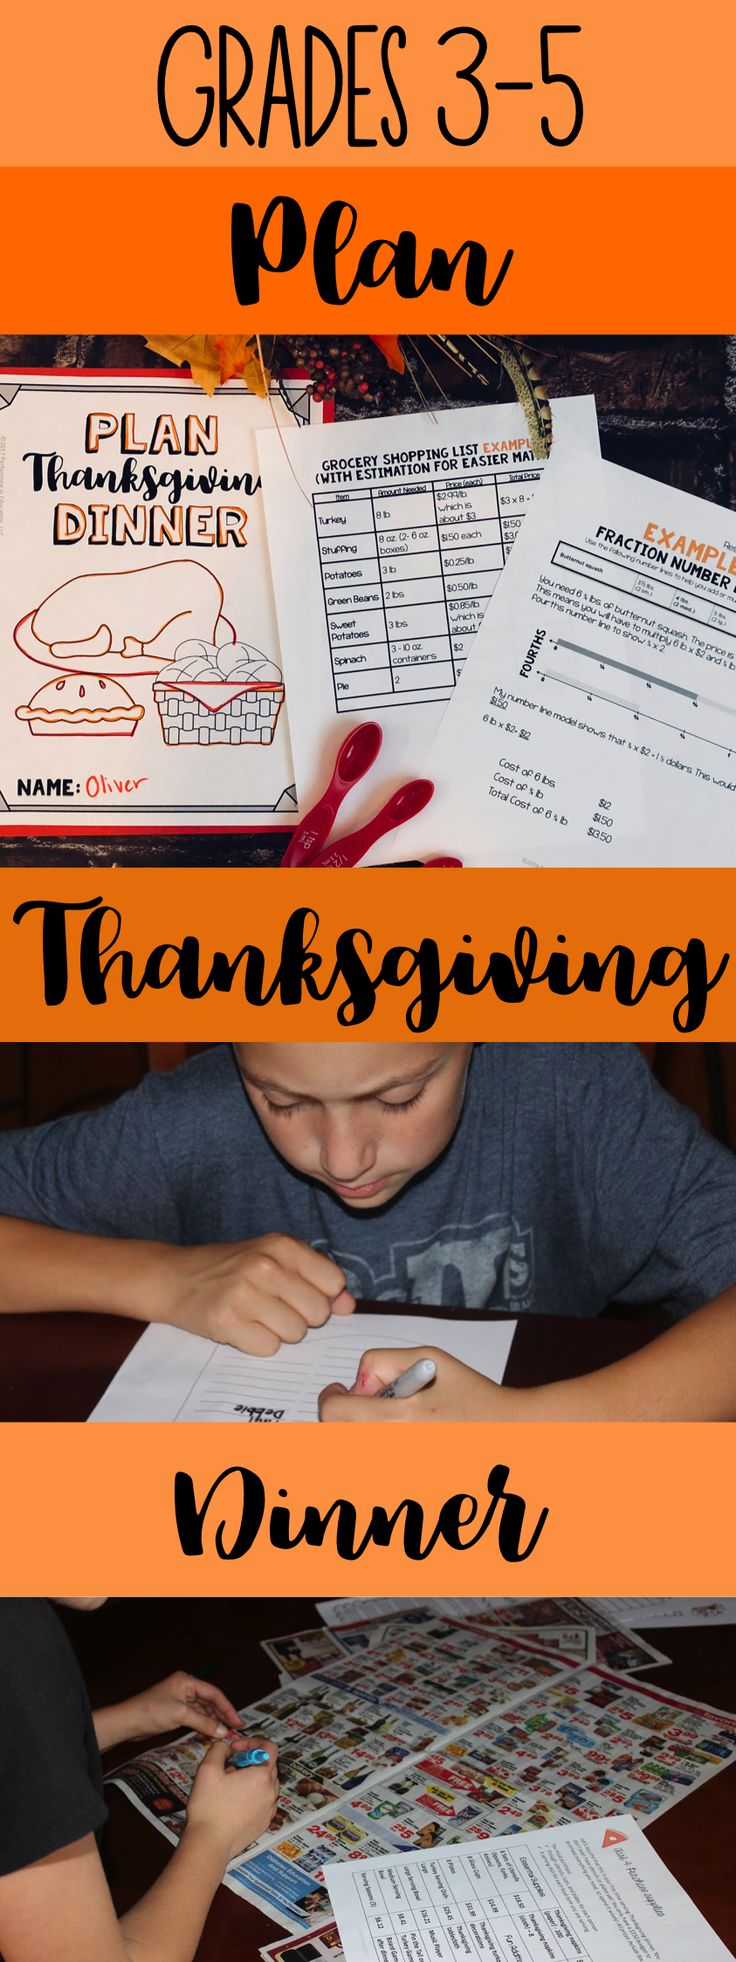 Teach your students math standards this November with this engaging Thanksgiving Project-Based Learning Activity! Click to see the 3rd, 4th, and 5th grade version.